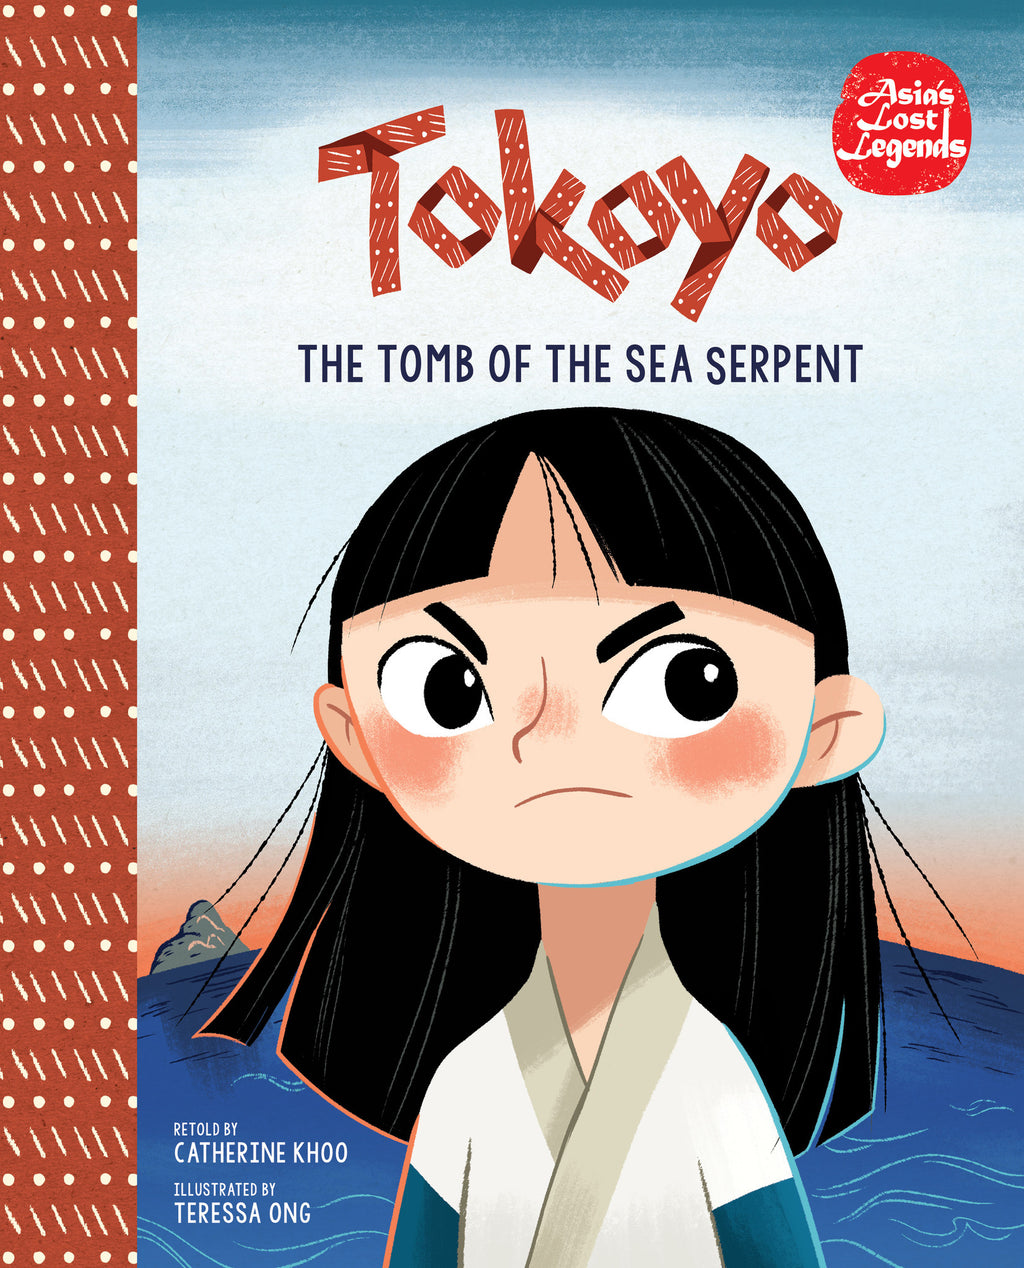 [Asia's Lost Legends] Tokoyo: The Tomb of the Sea Serpent